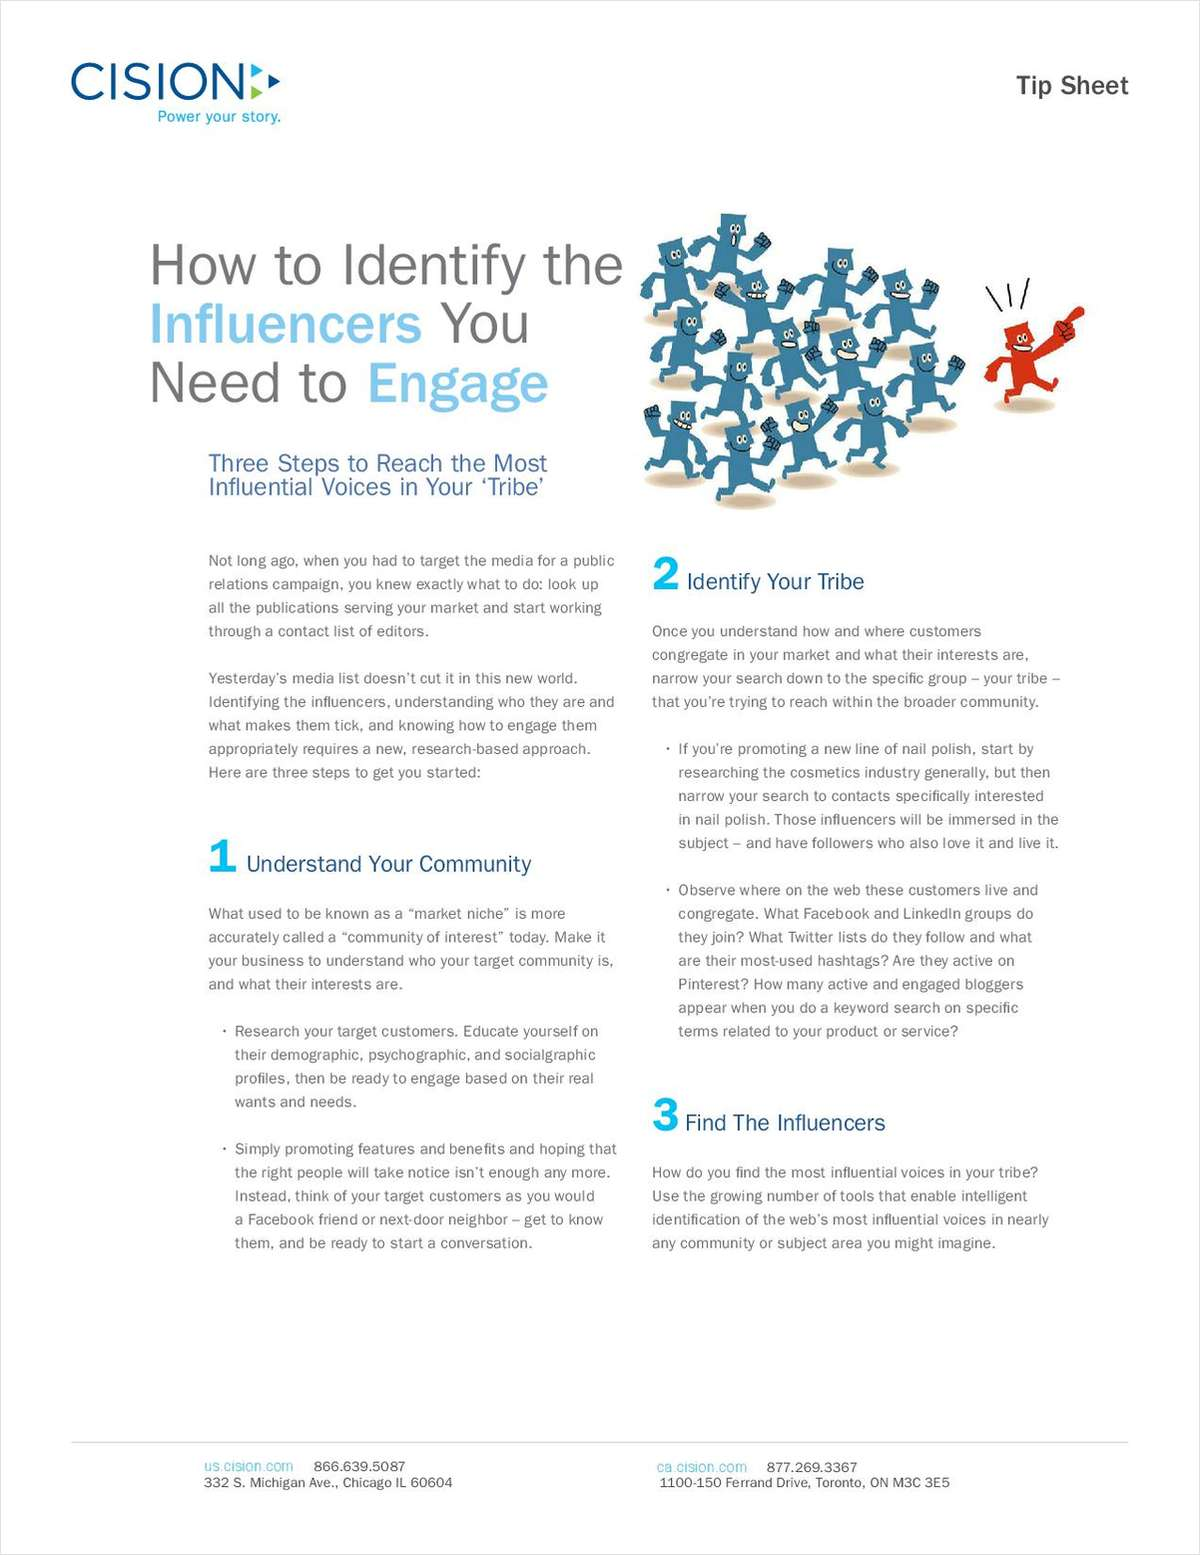 How to Identify the Influencers You Need to Engage